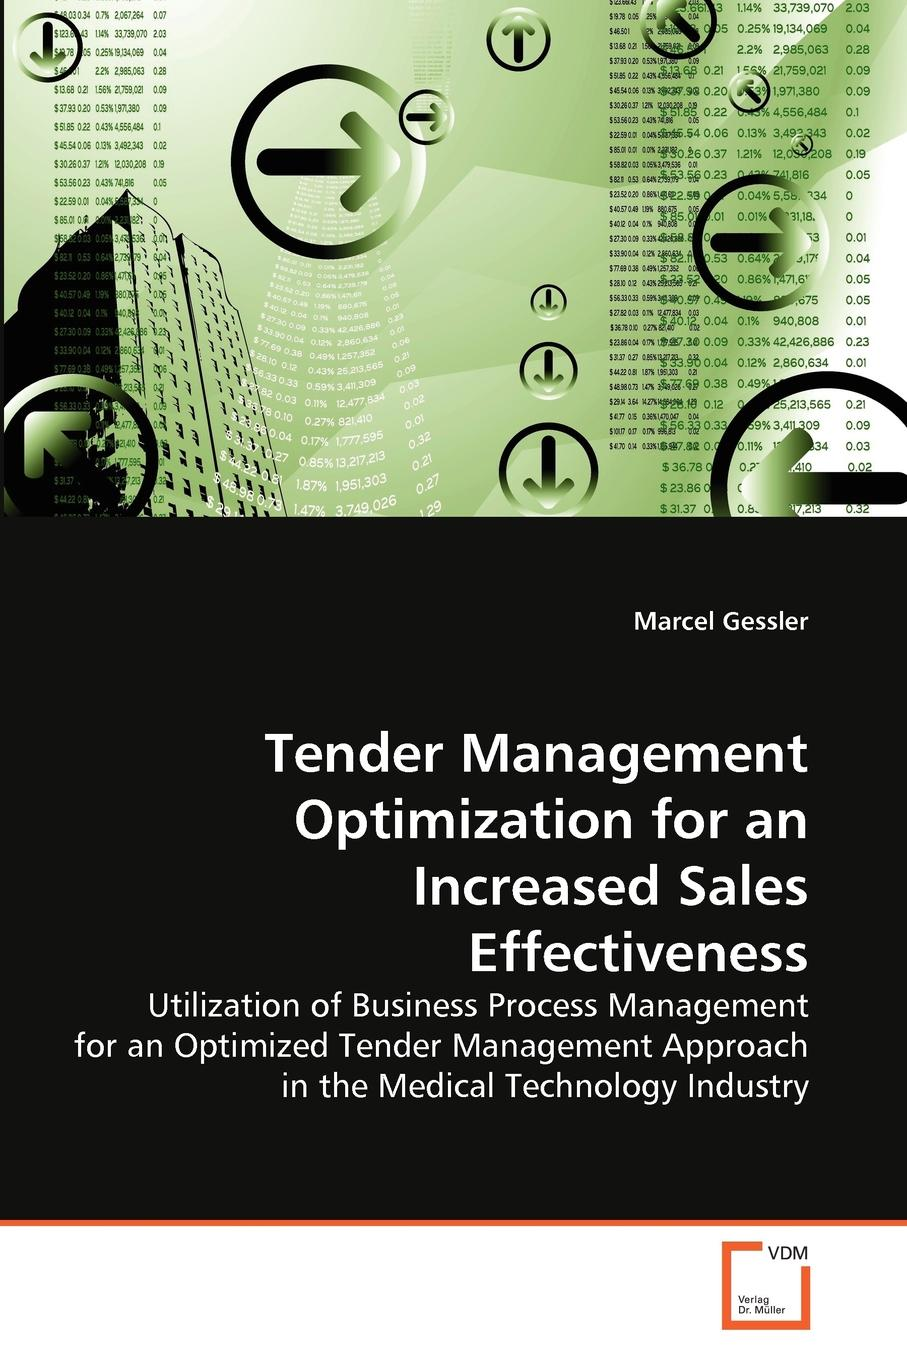 Marcel Gessler Tender Management Optimization for an Increased Sales Effectiveness комплект buderus перенастройки на сжиженный газ b p для u072 18 u072 12 wbn6000 18 wbn6000 12 87376010800